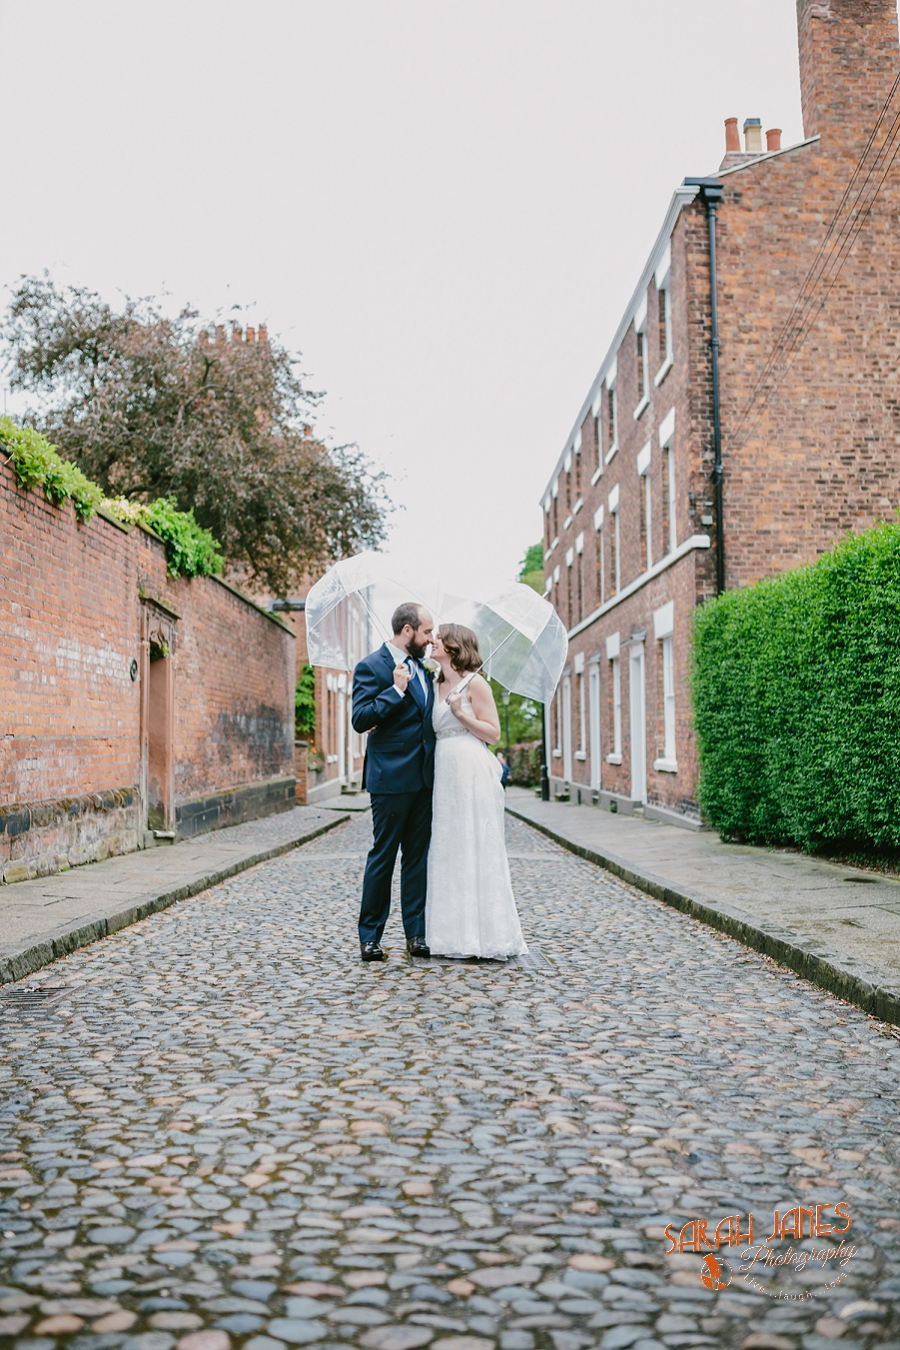 Sarah Janes Photography, Eccleston Village hall wedding, Chester Town Hall wedding_0013.jpg